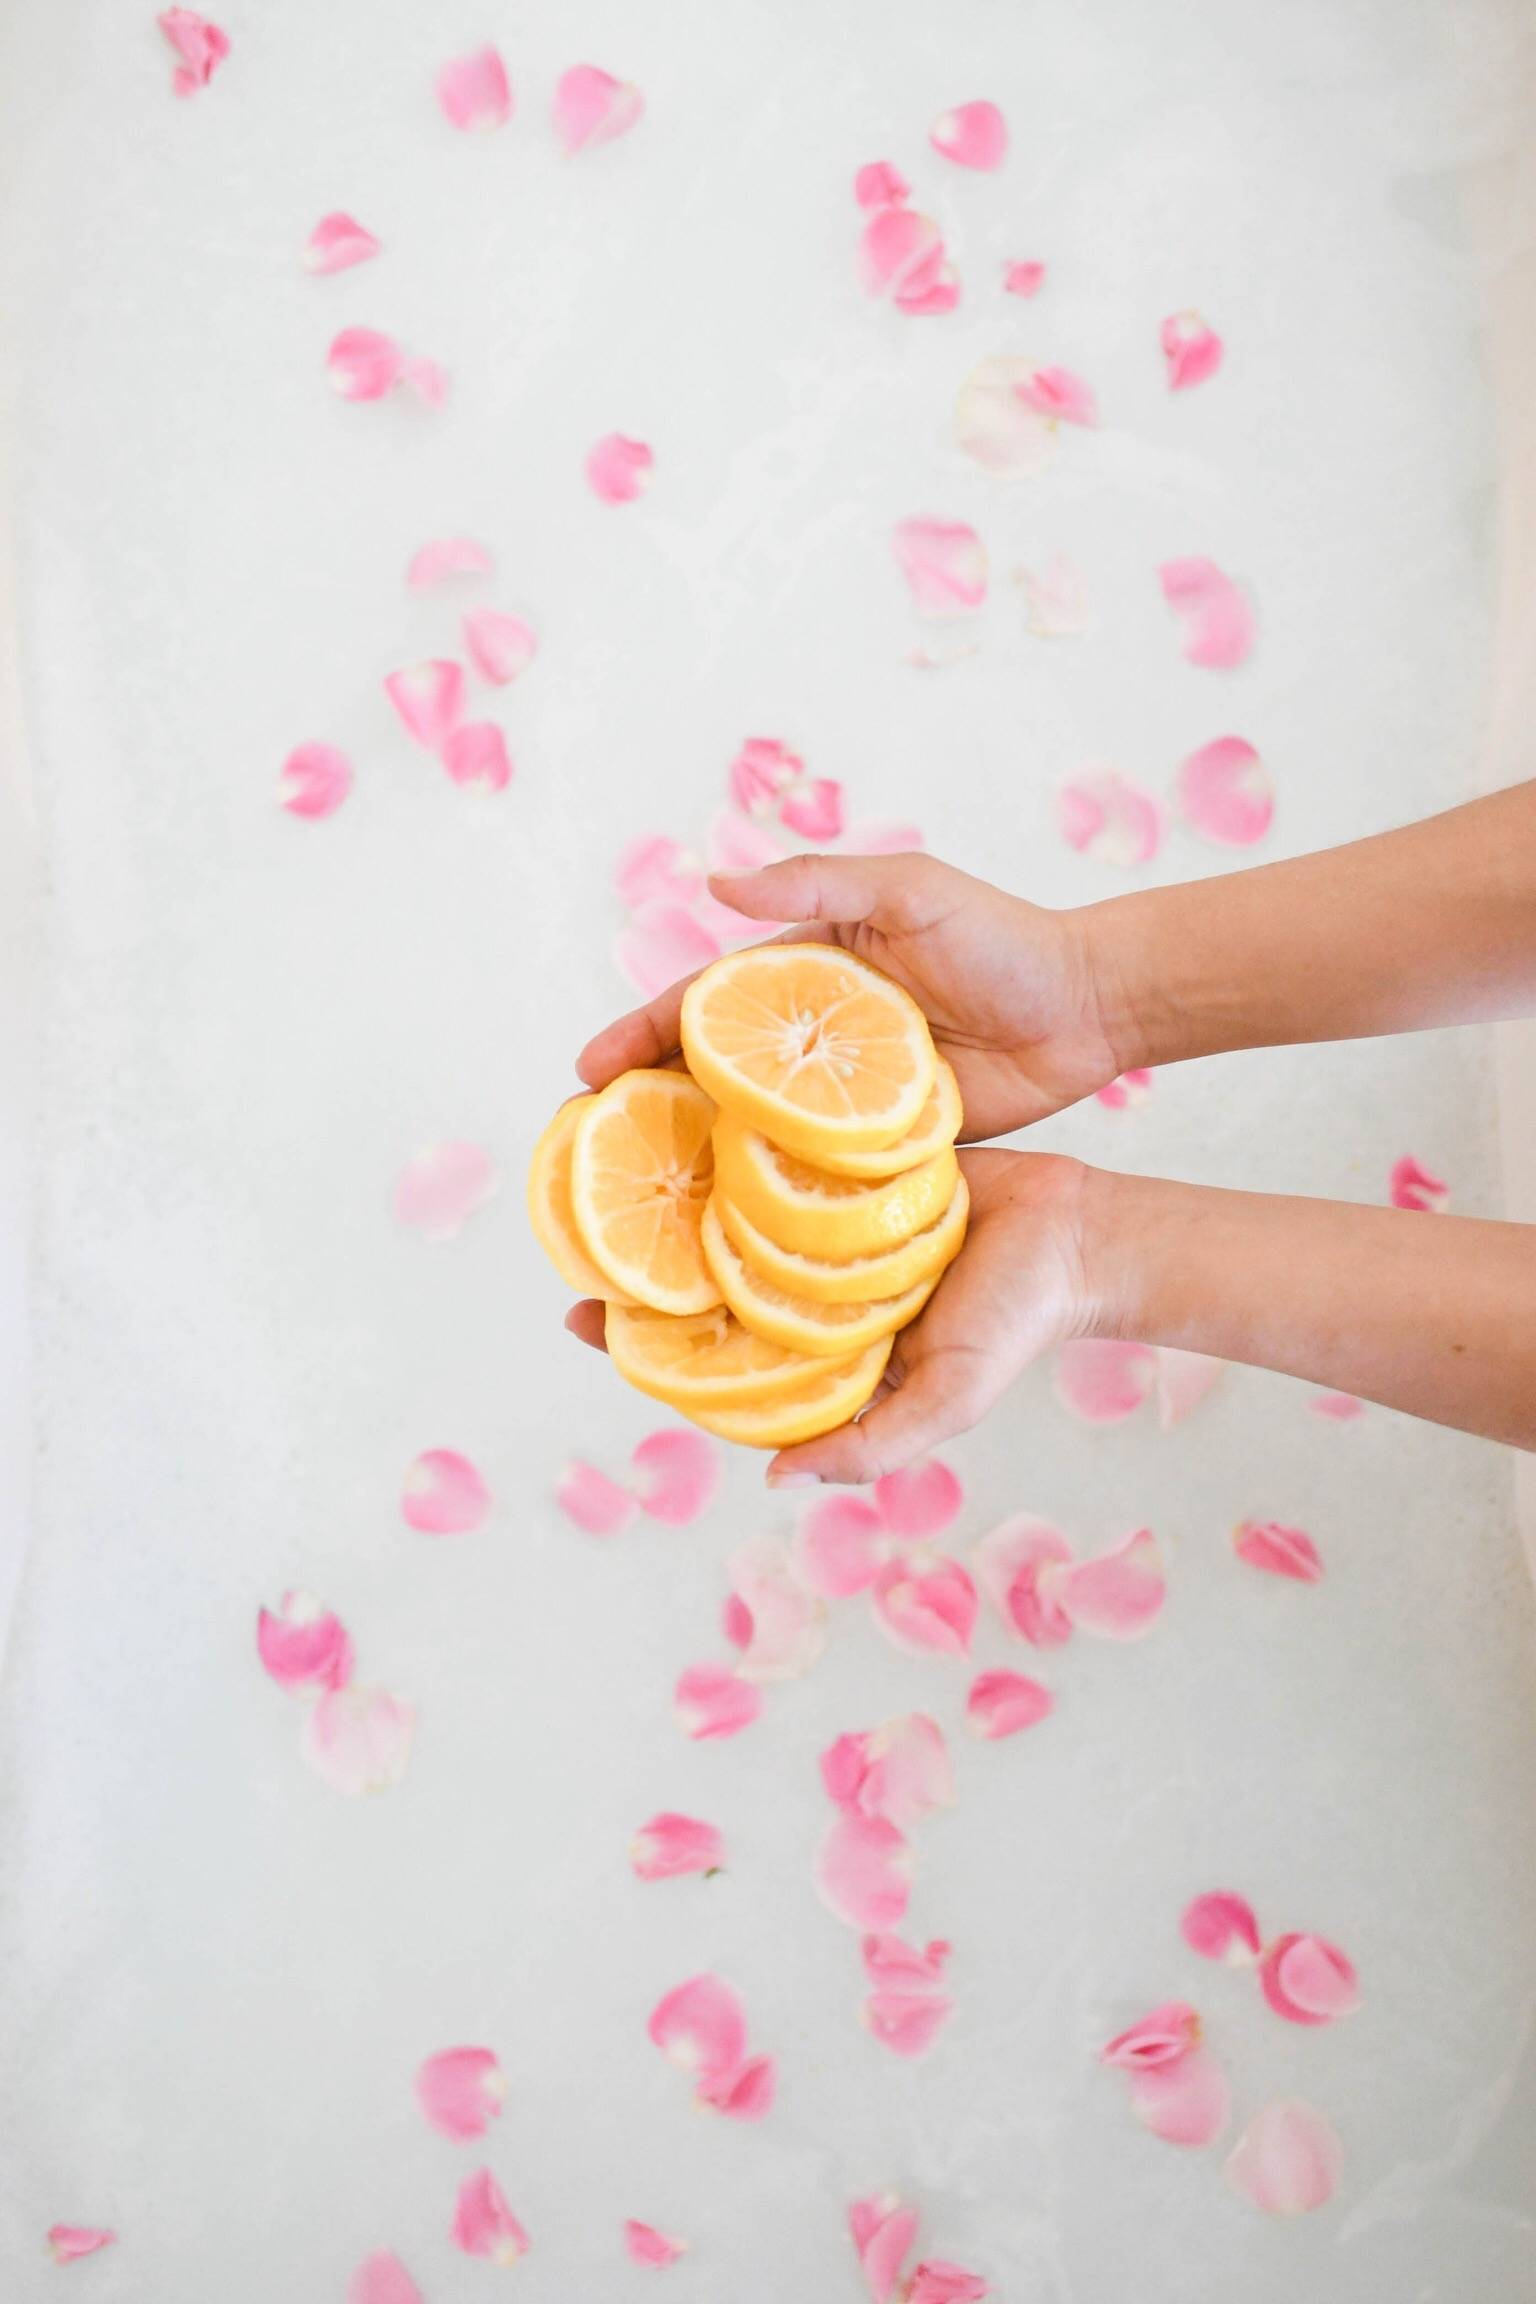 This Valentine's Day, show yourself some love by doing something that makes YOU happy. There are so many ways to practice self-care and February is the perfect month to do so!